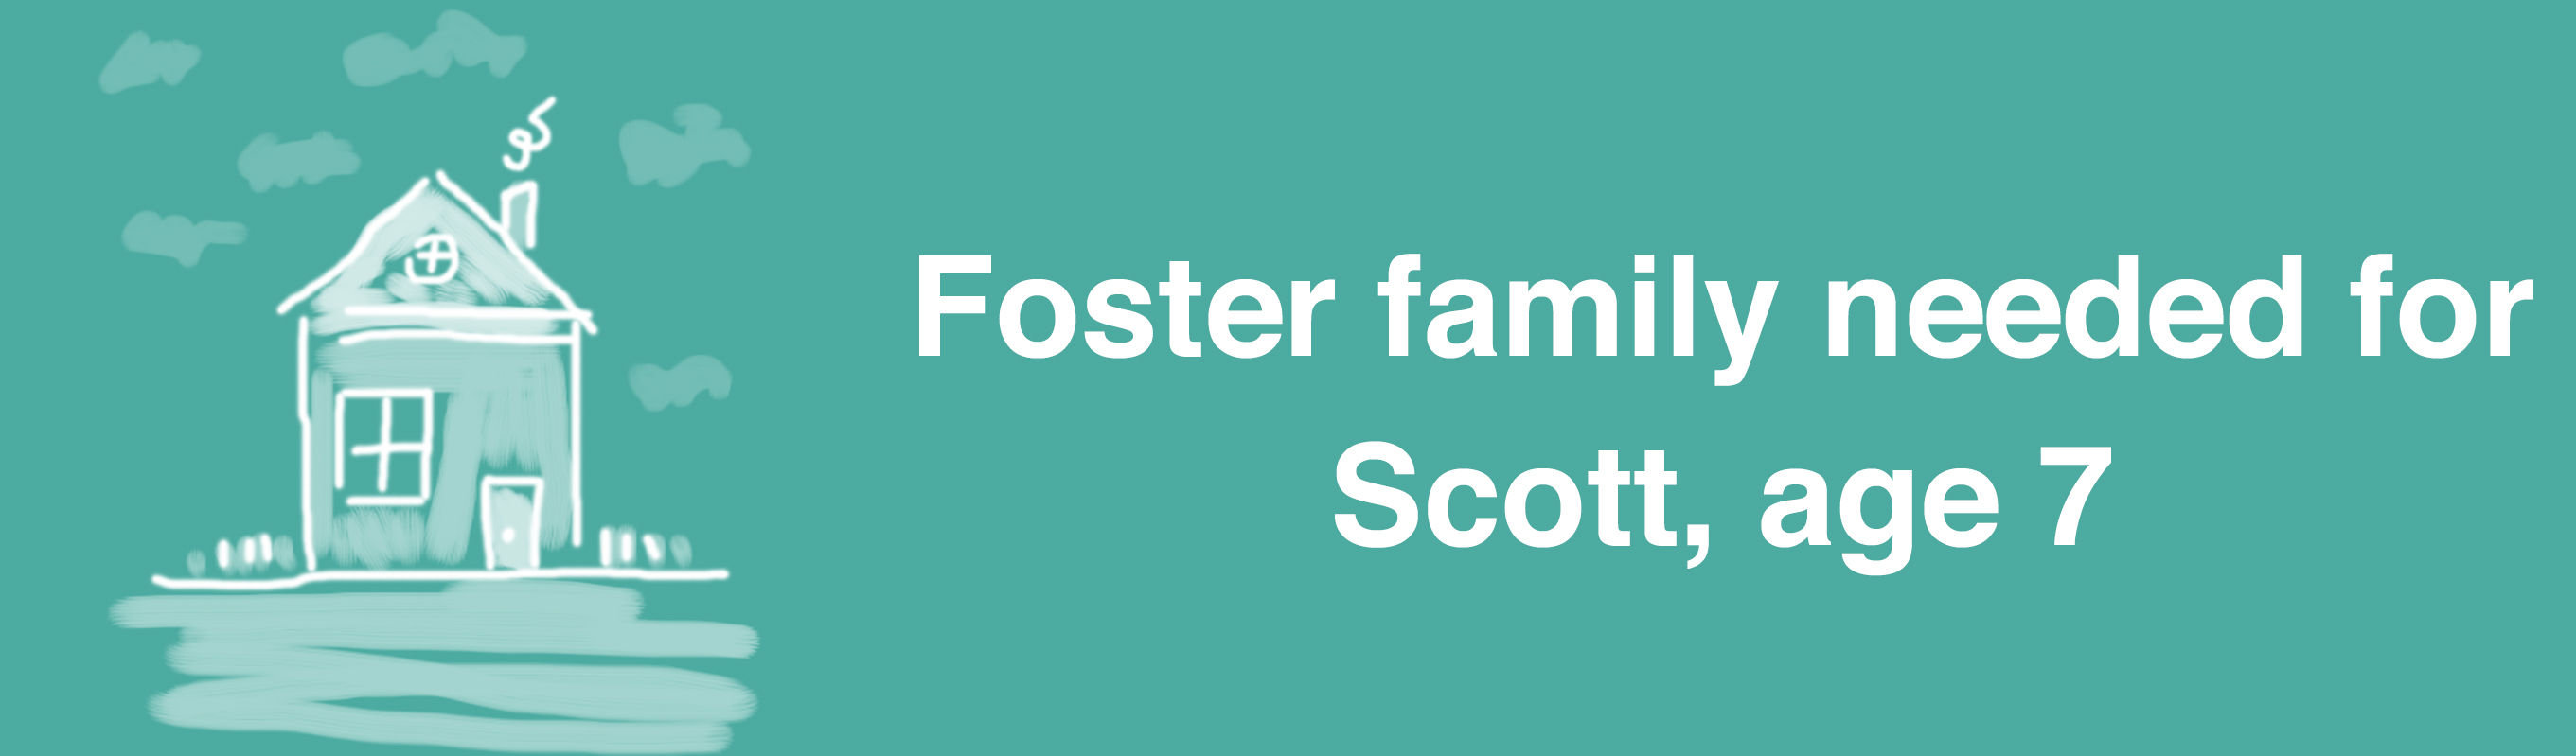 foster caretusla - child and family agency